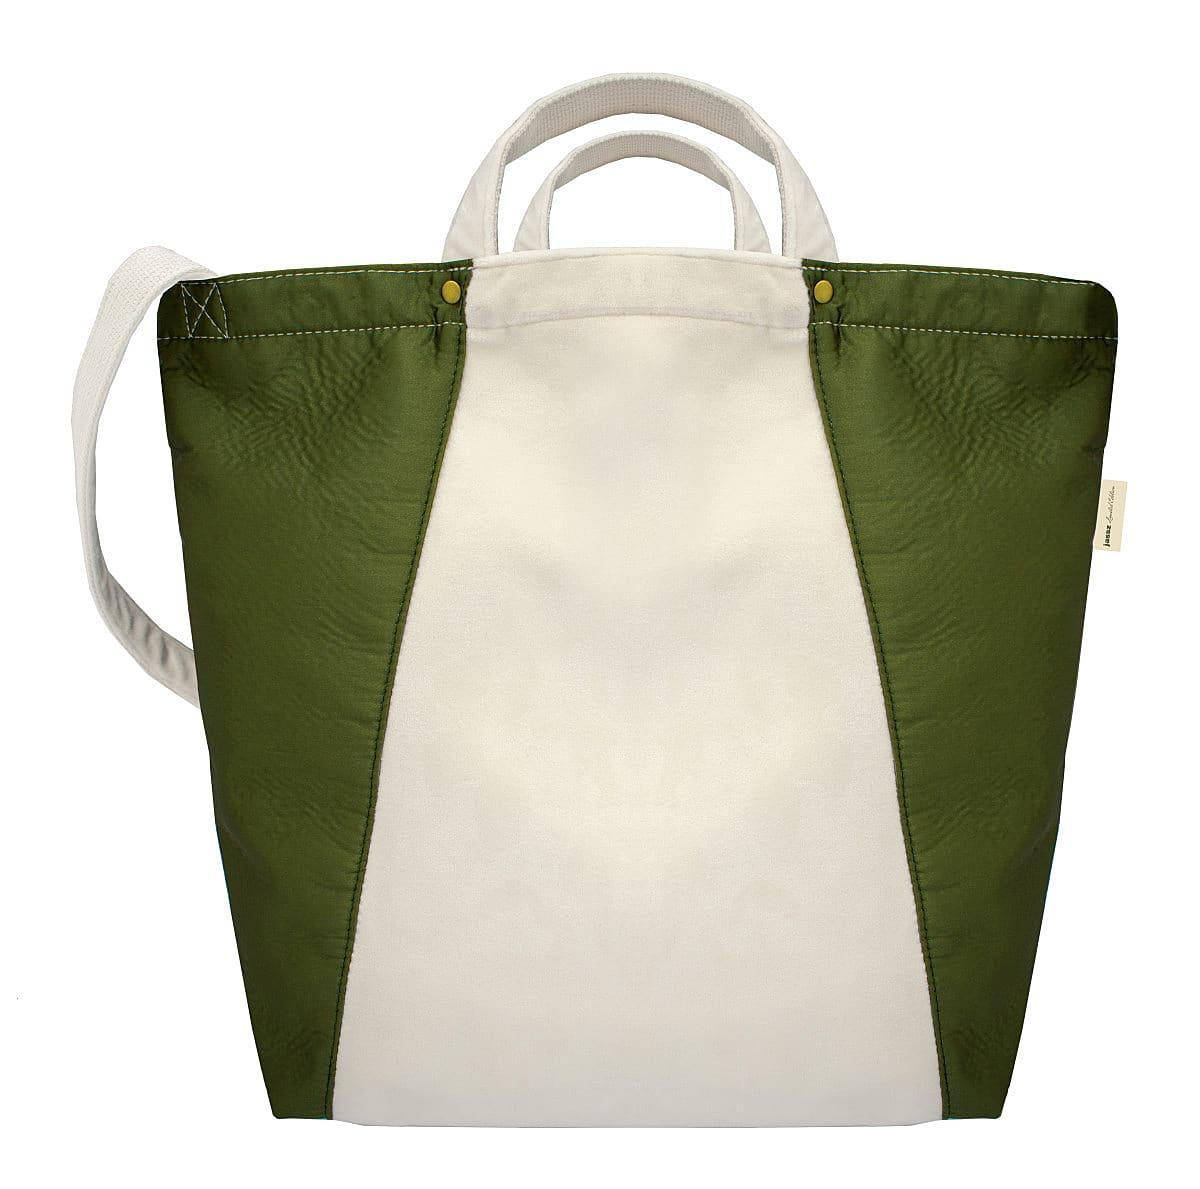 Jassz Bags Kiyomi Satin Velvet Tote Bag in Natural / Olive Green (Product Code: A04)